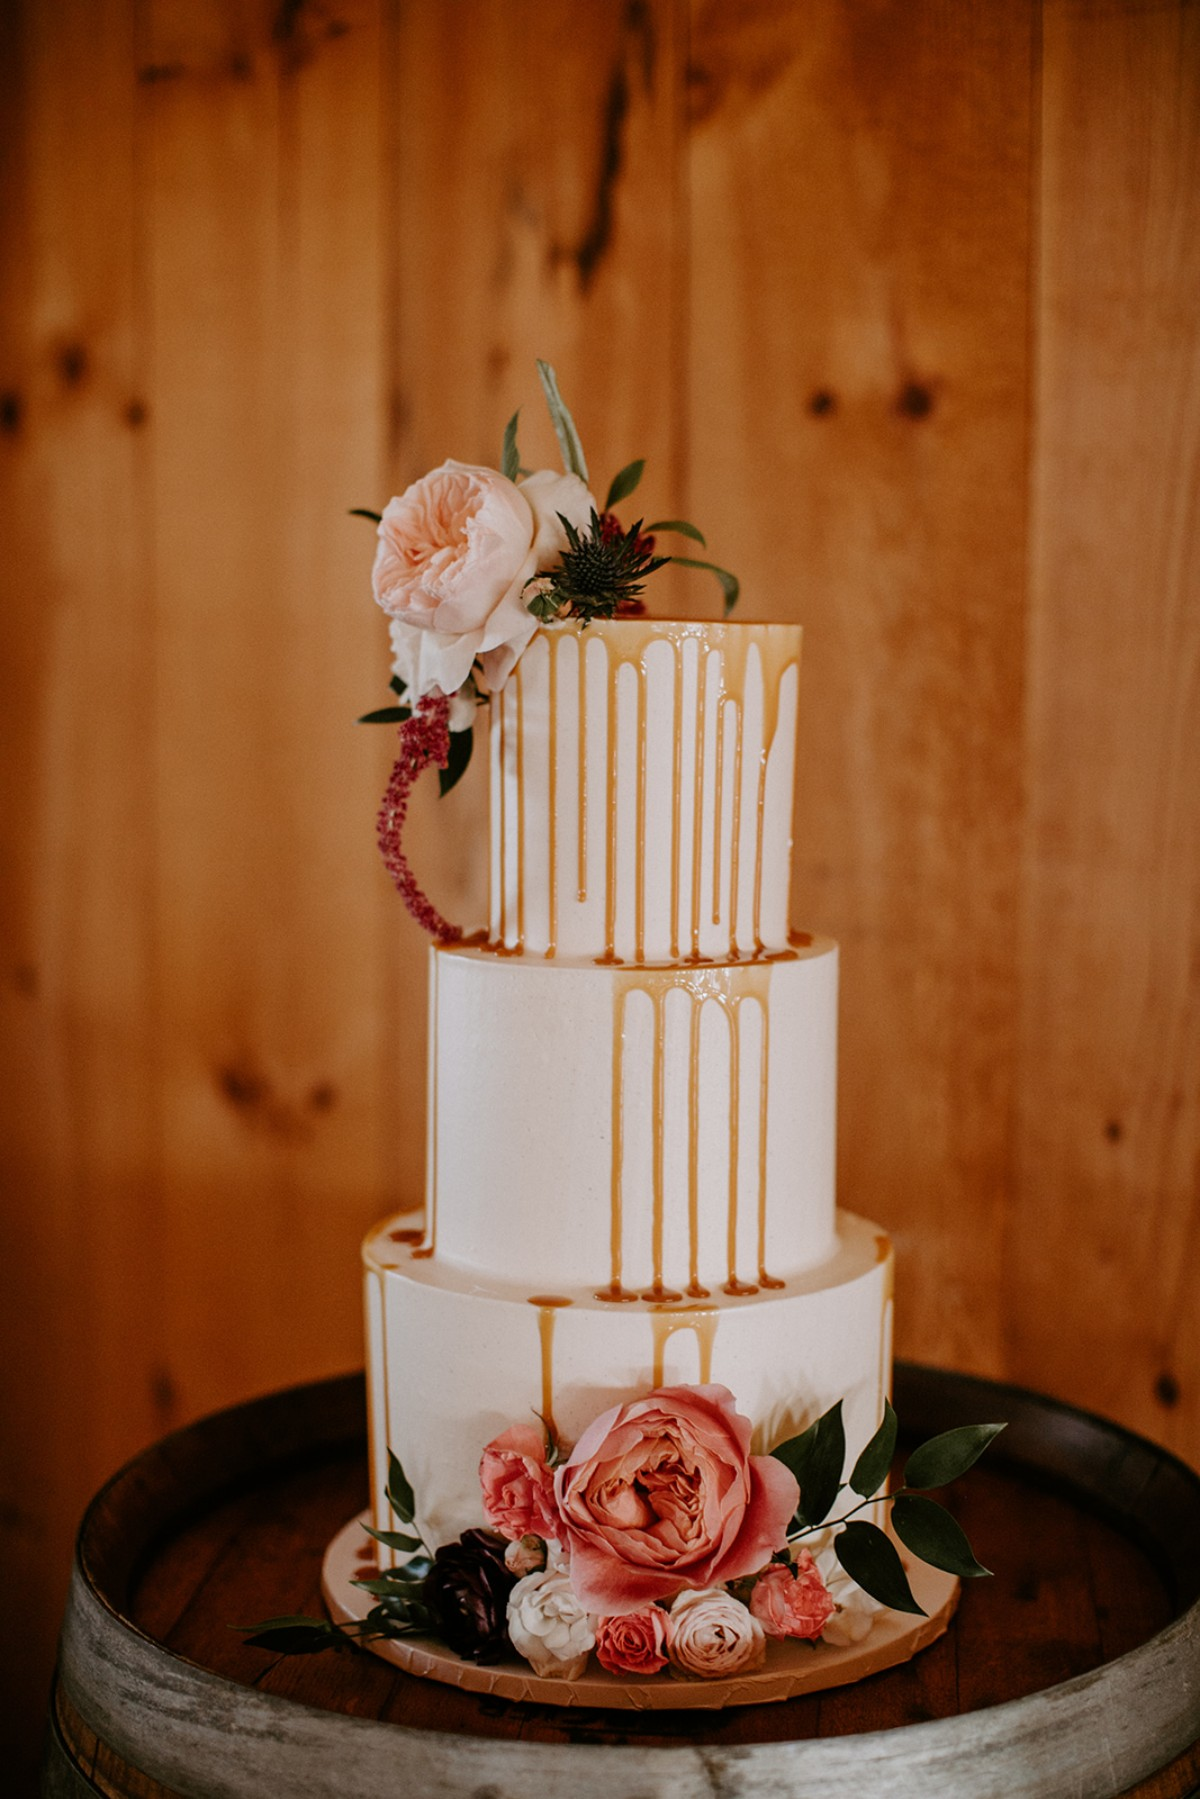 Drizzle wedding cake